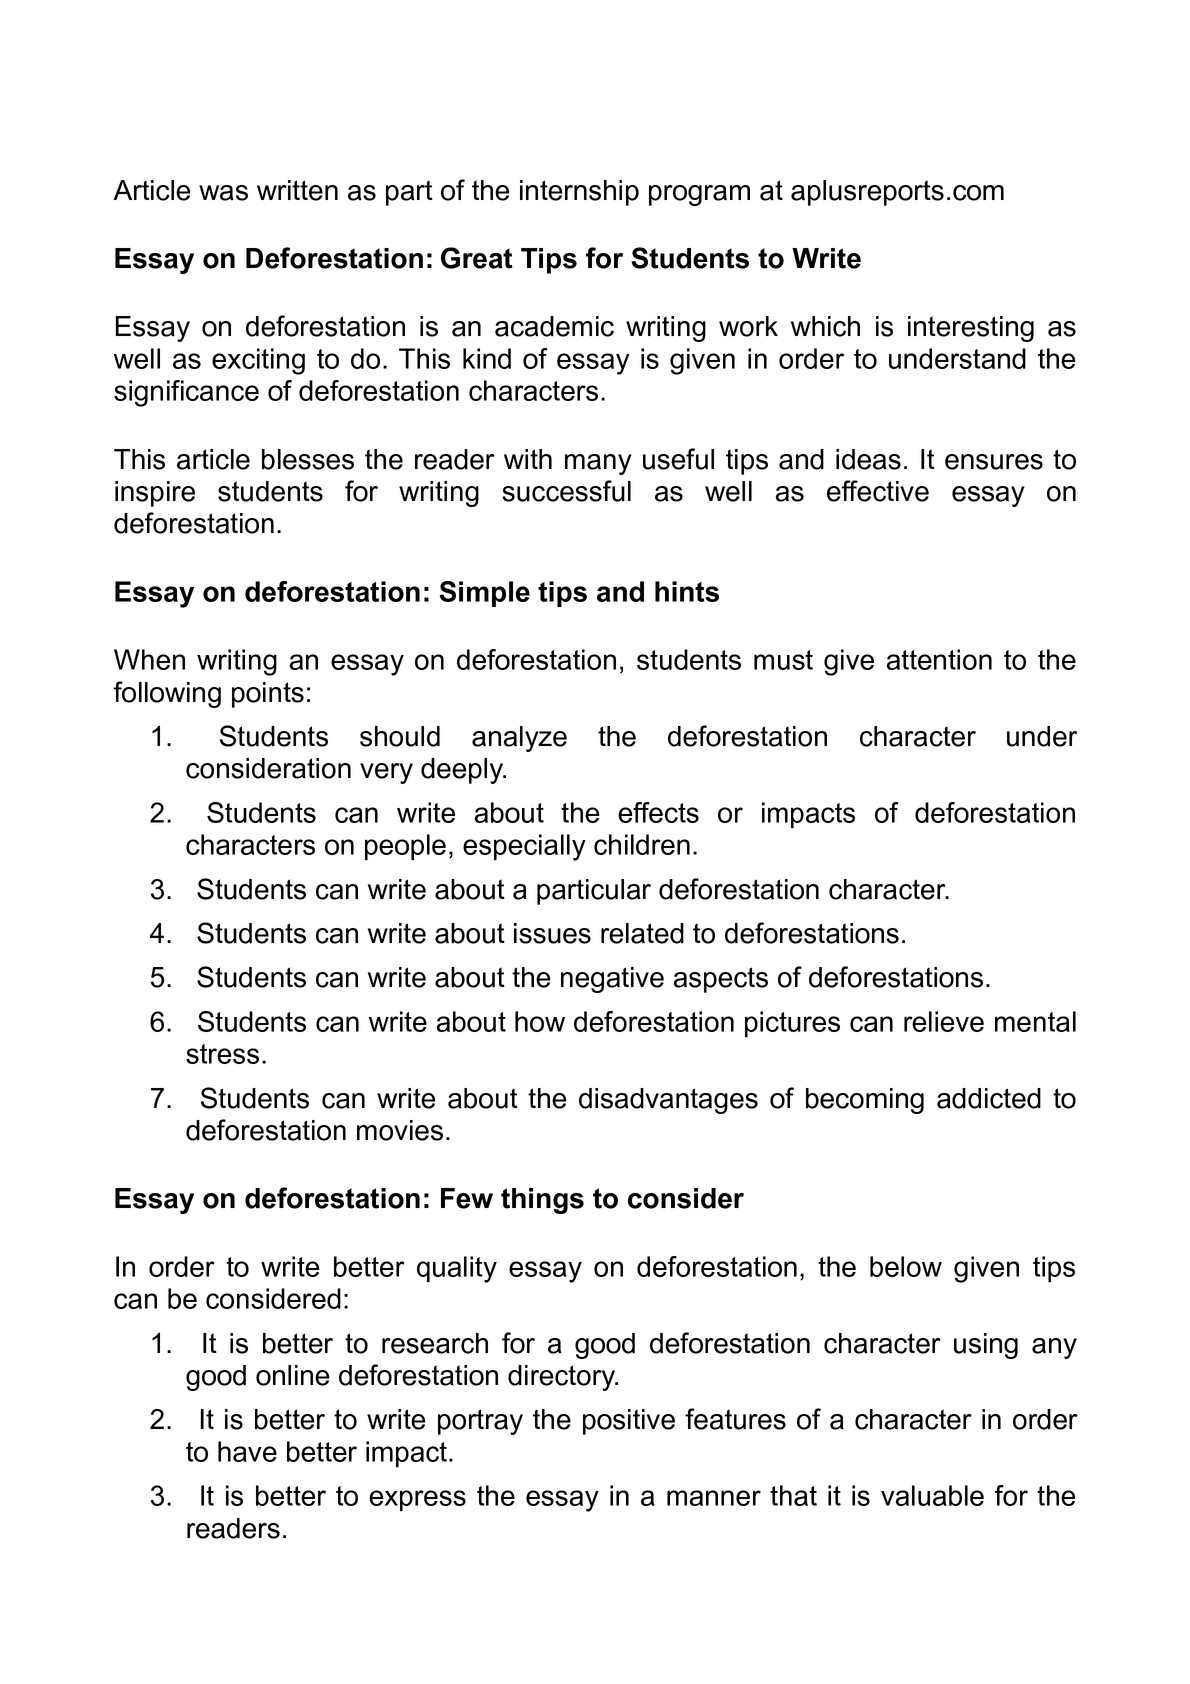 deforestation argumentative essay essay on cause and effect of deforestation picture essay ruekspecstroy ru essay on cause and